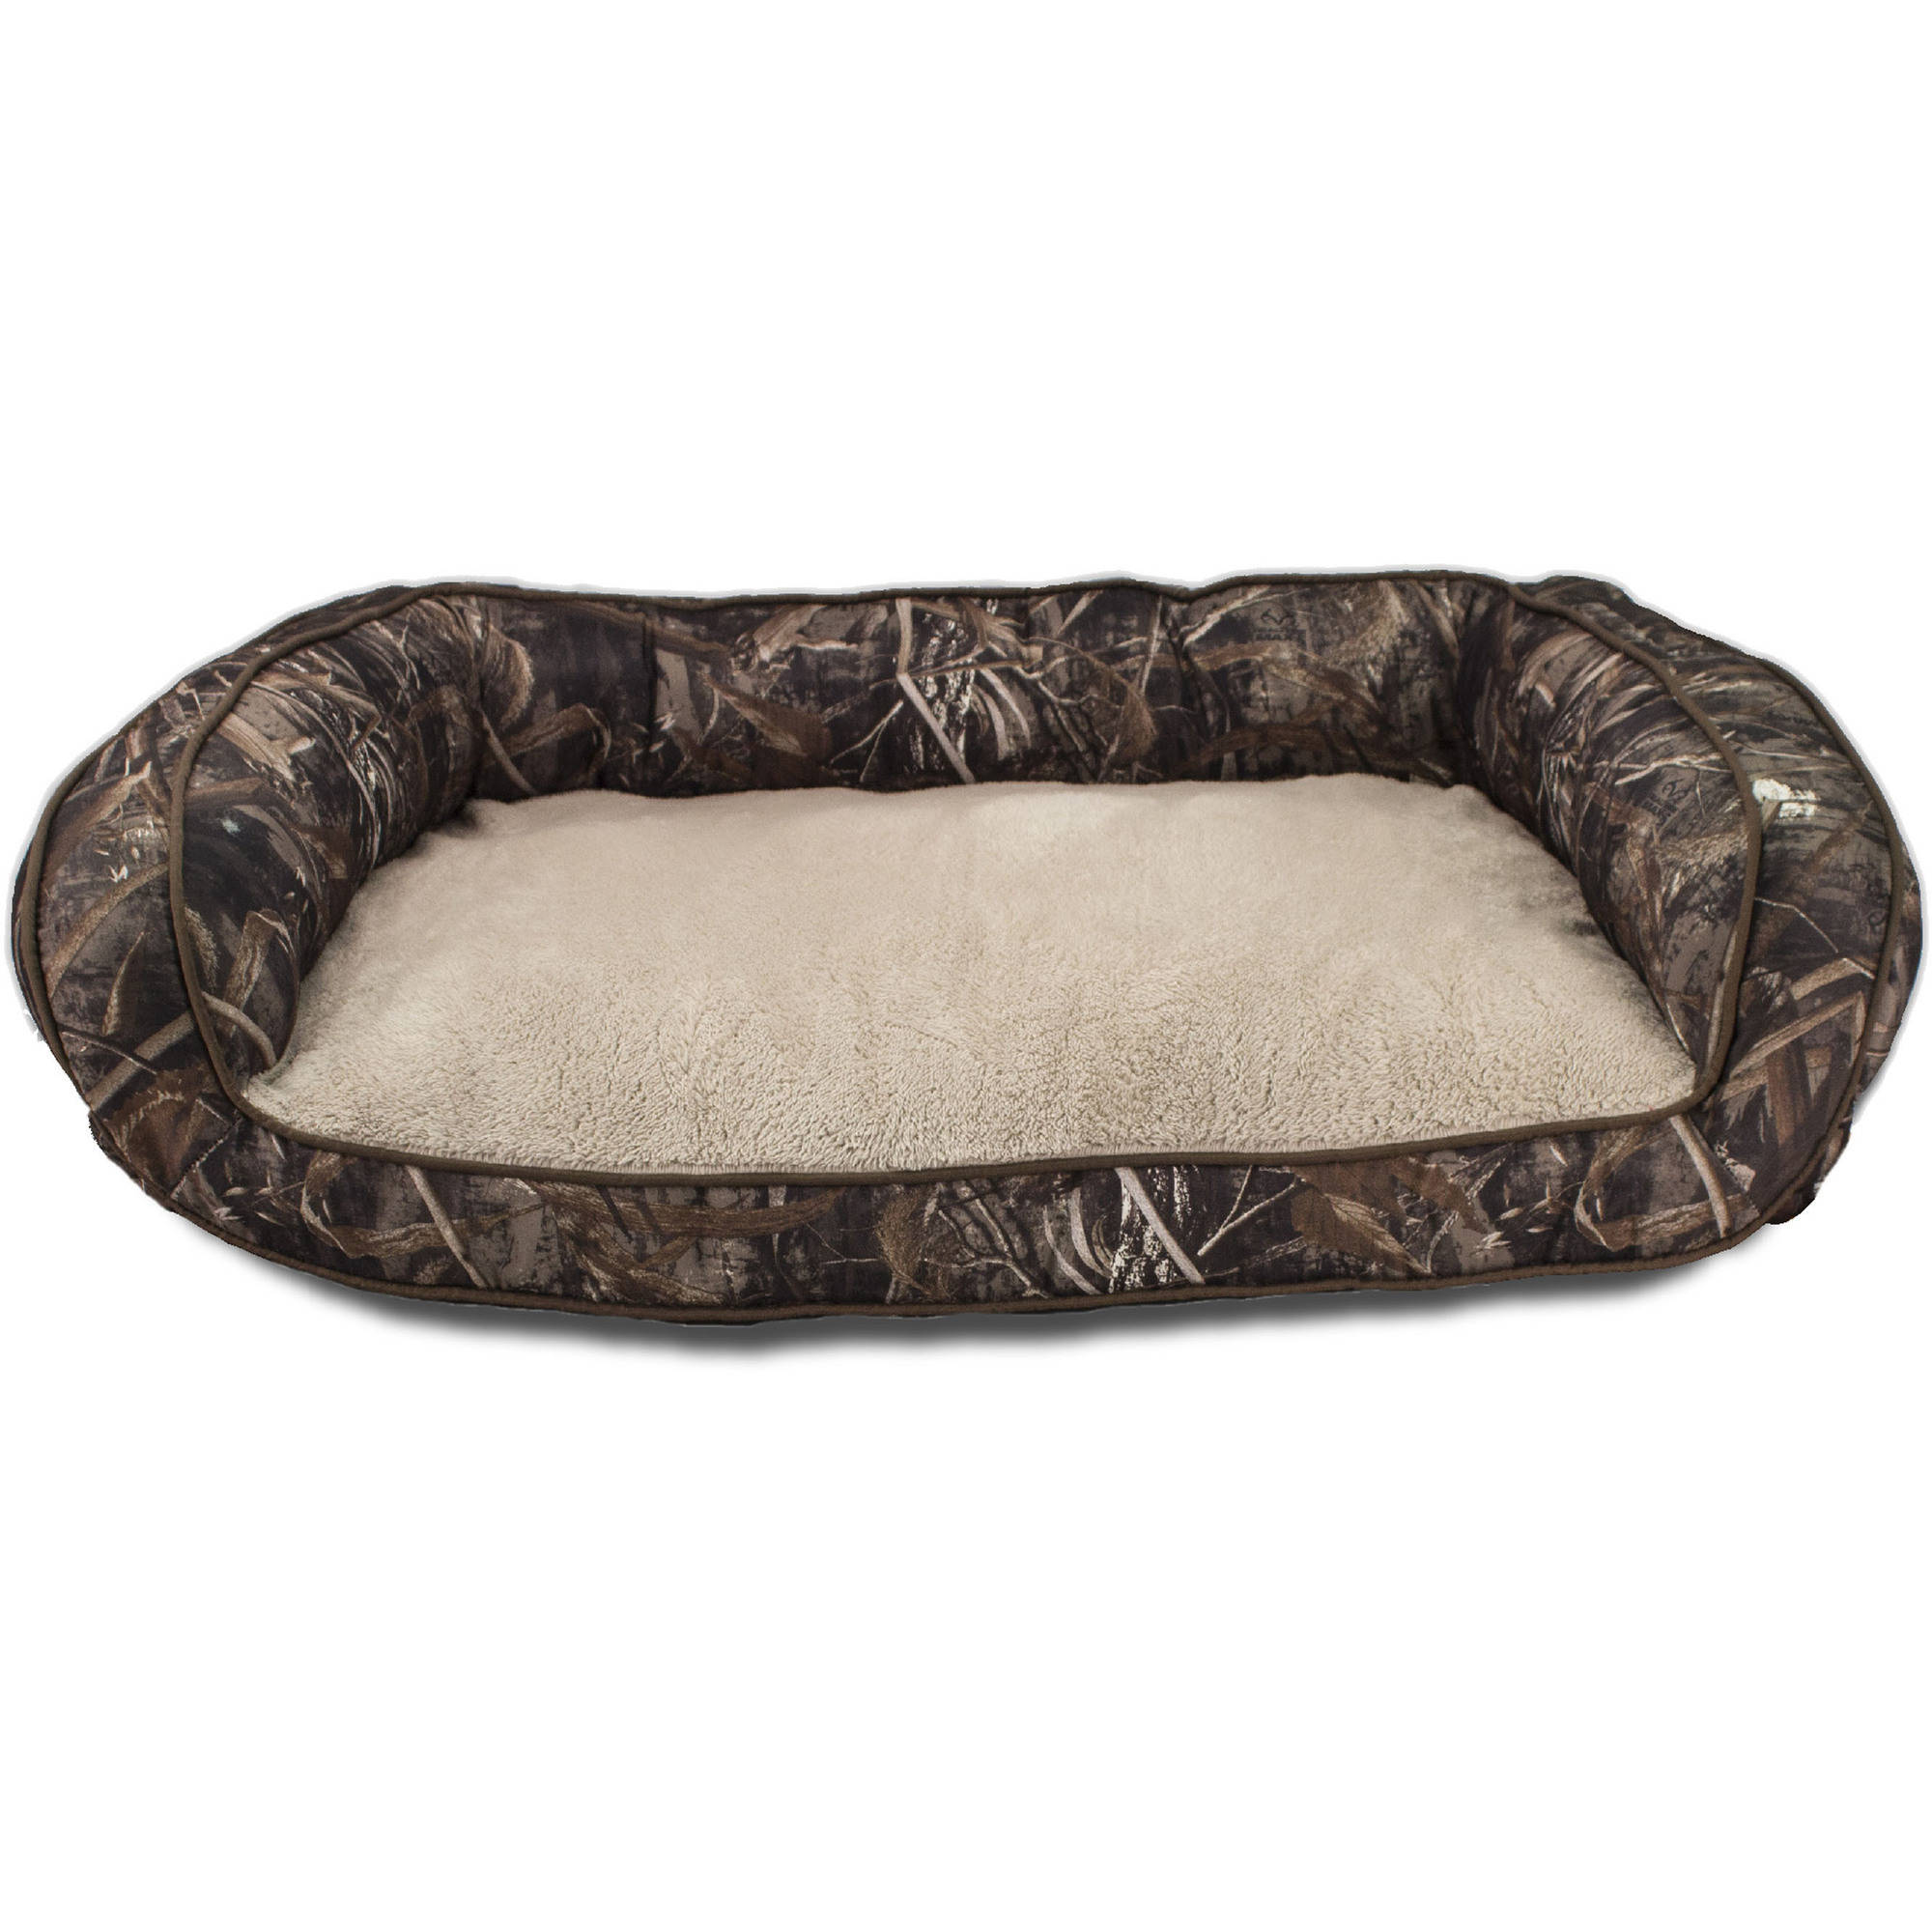 Realtree Max 5 Camo Couch Pet Bed